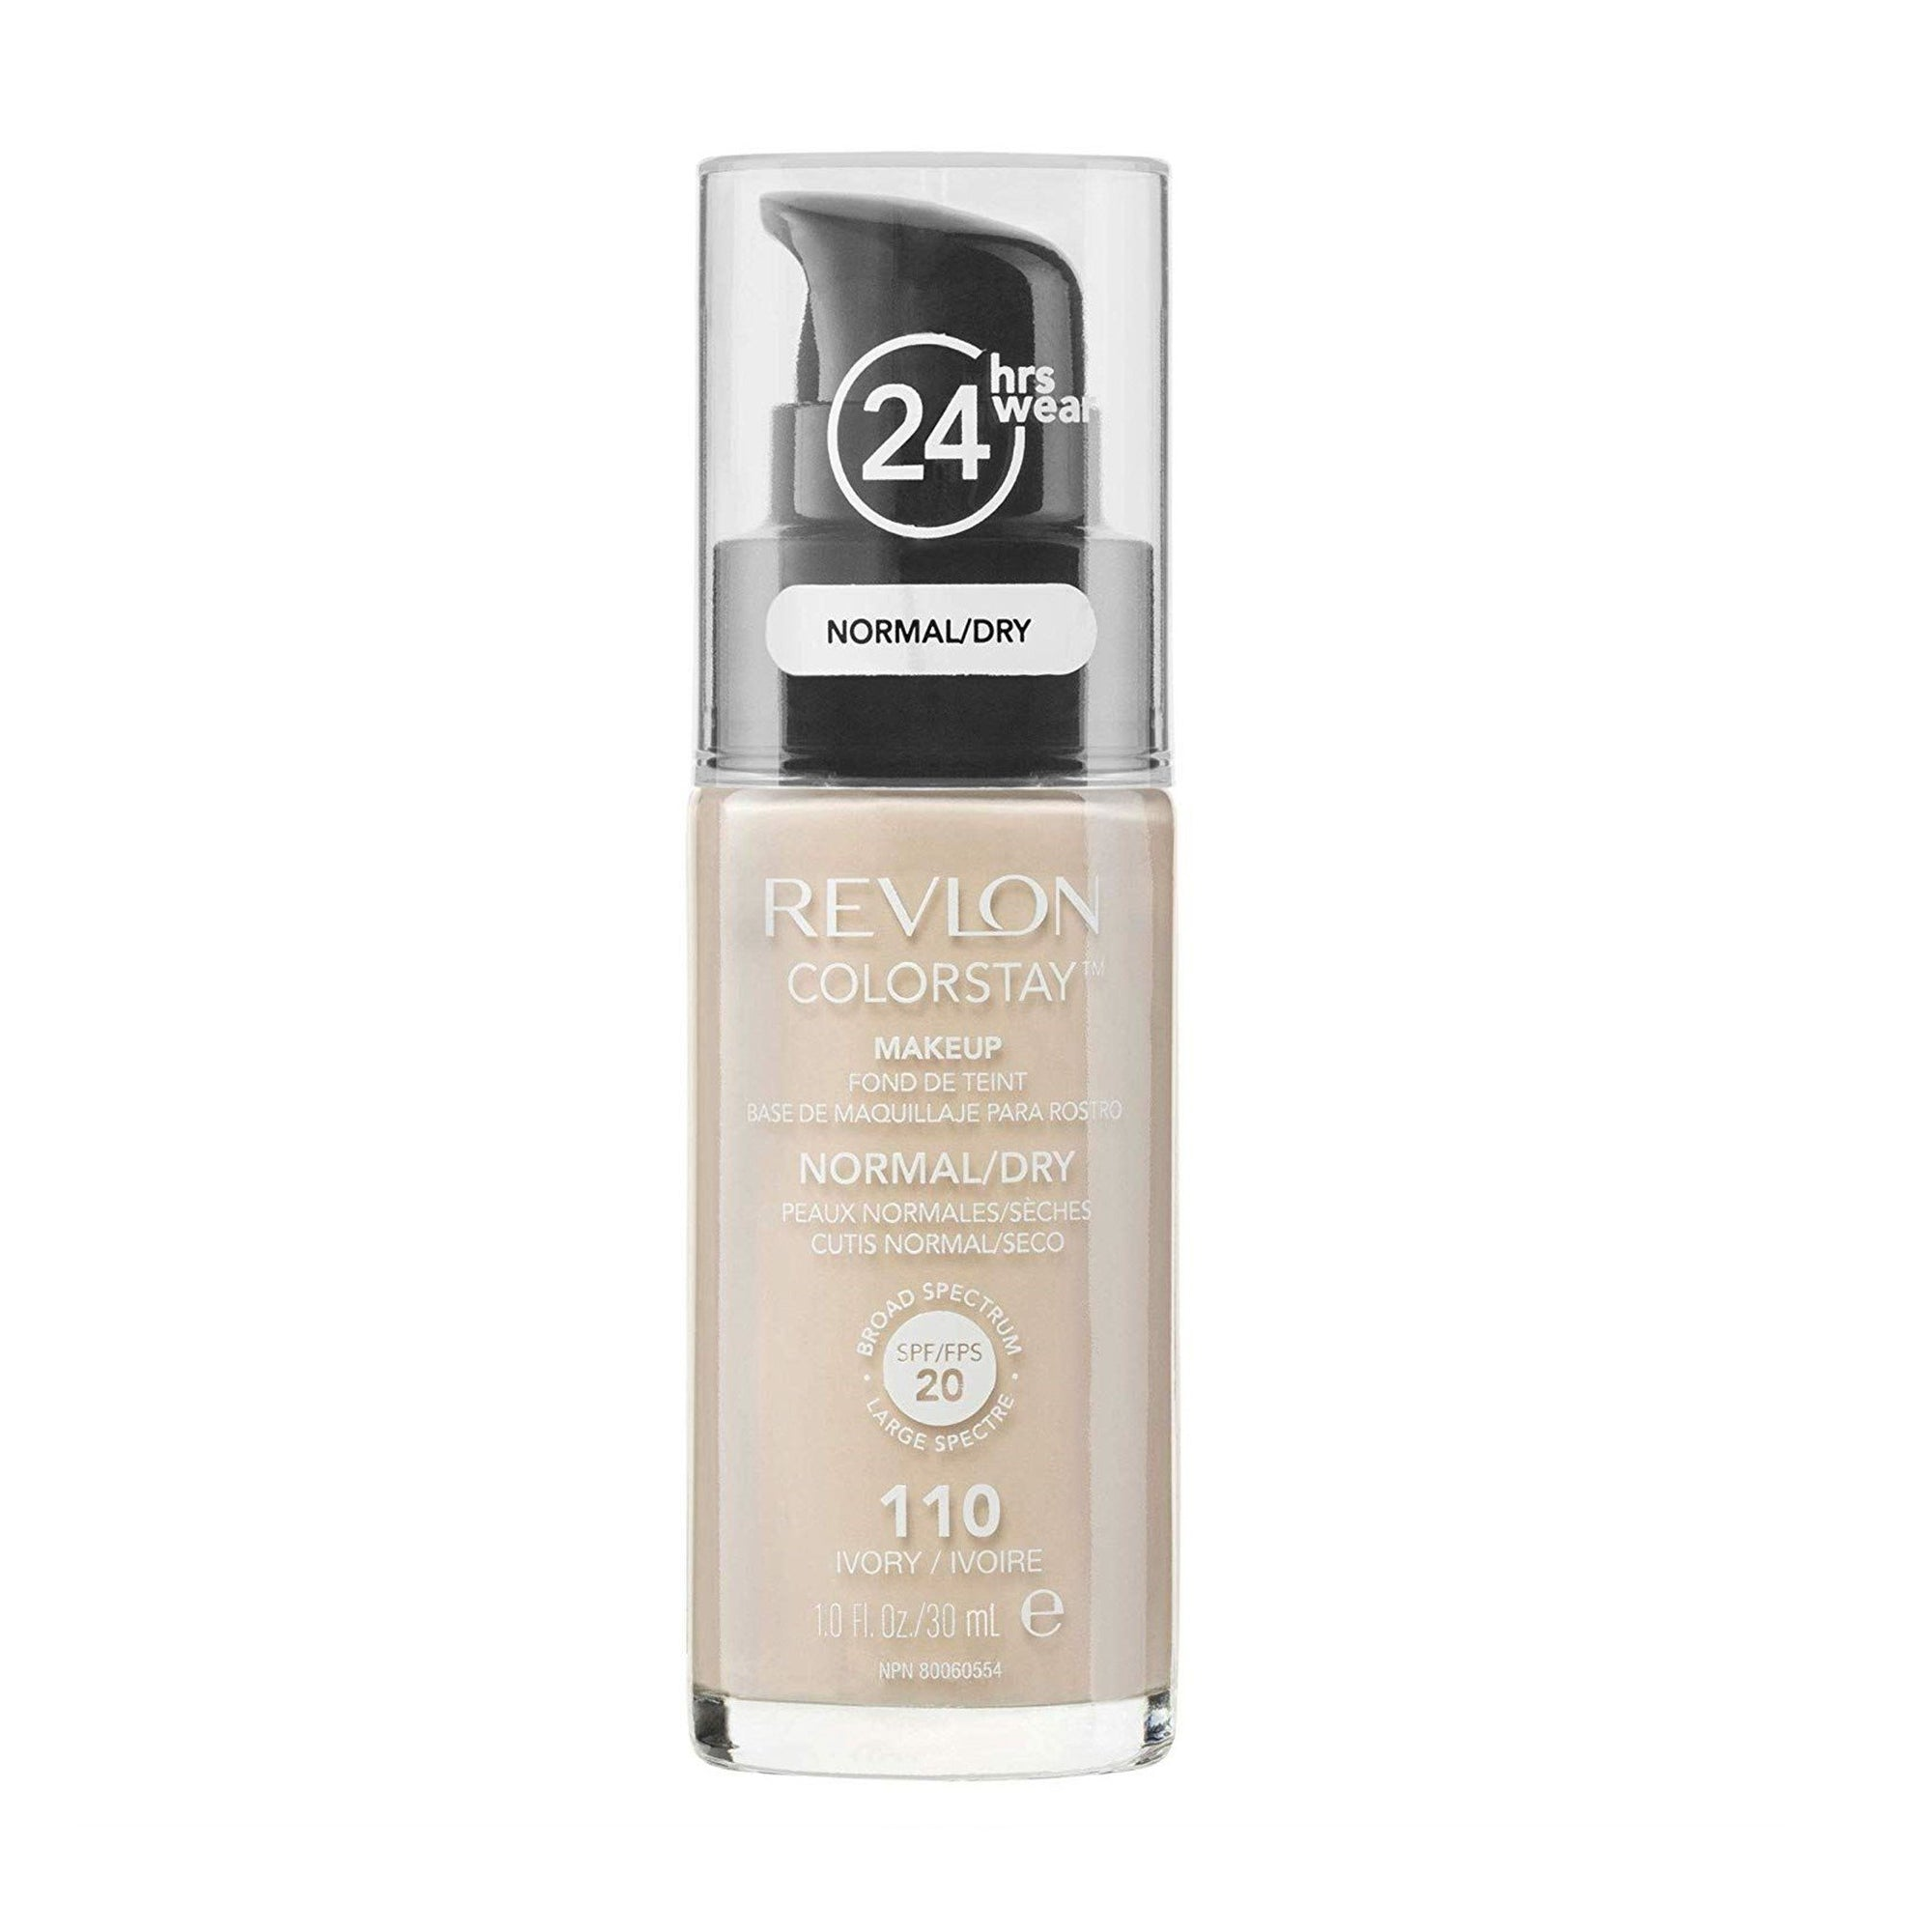 Revlon Colorstay Foundation for Normal/Dry